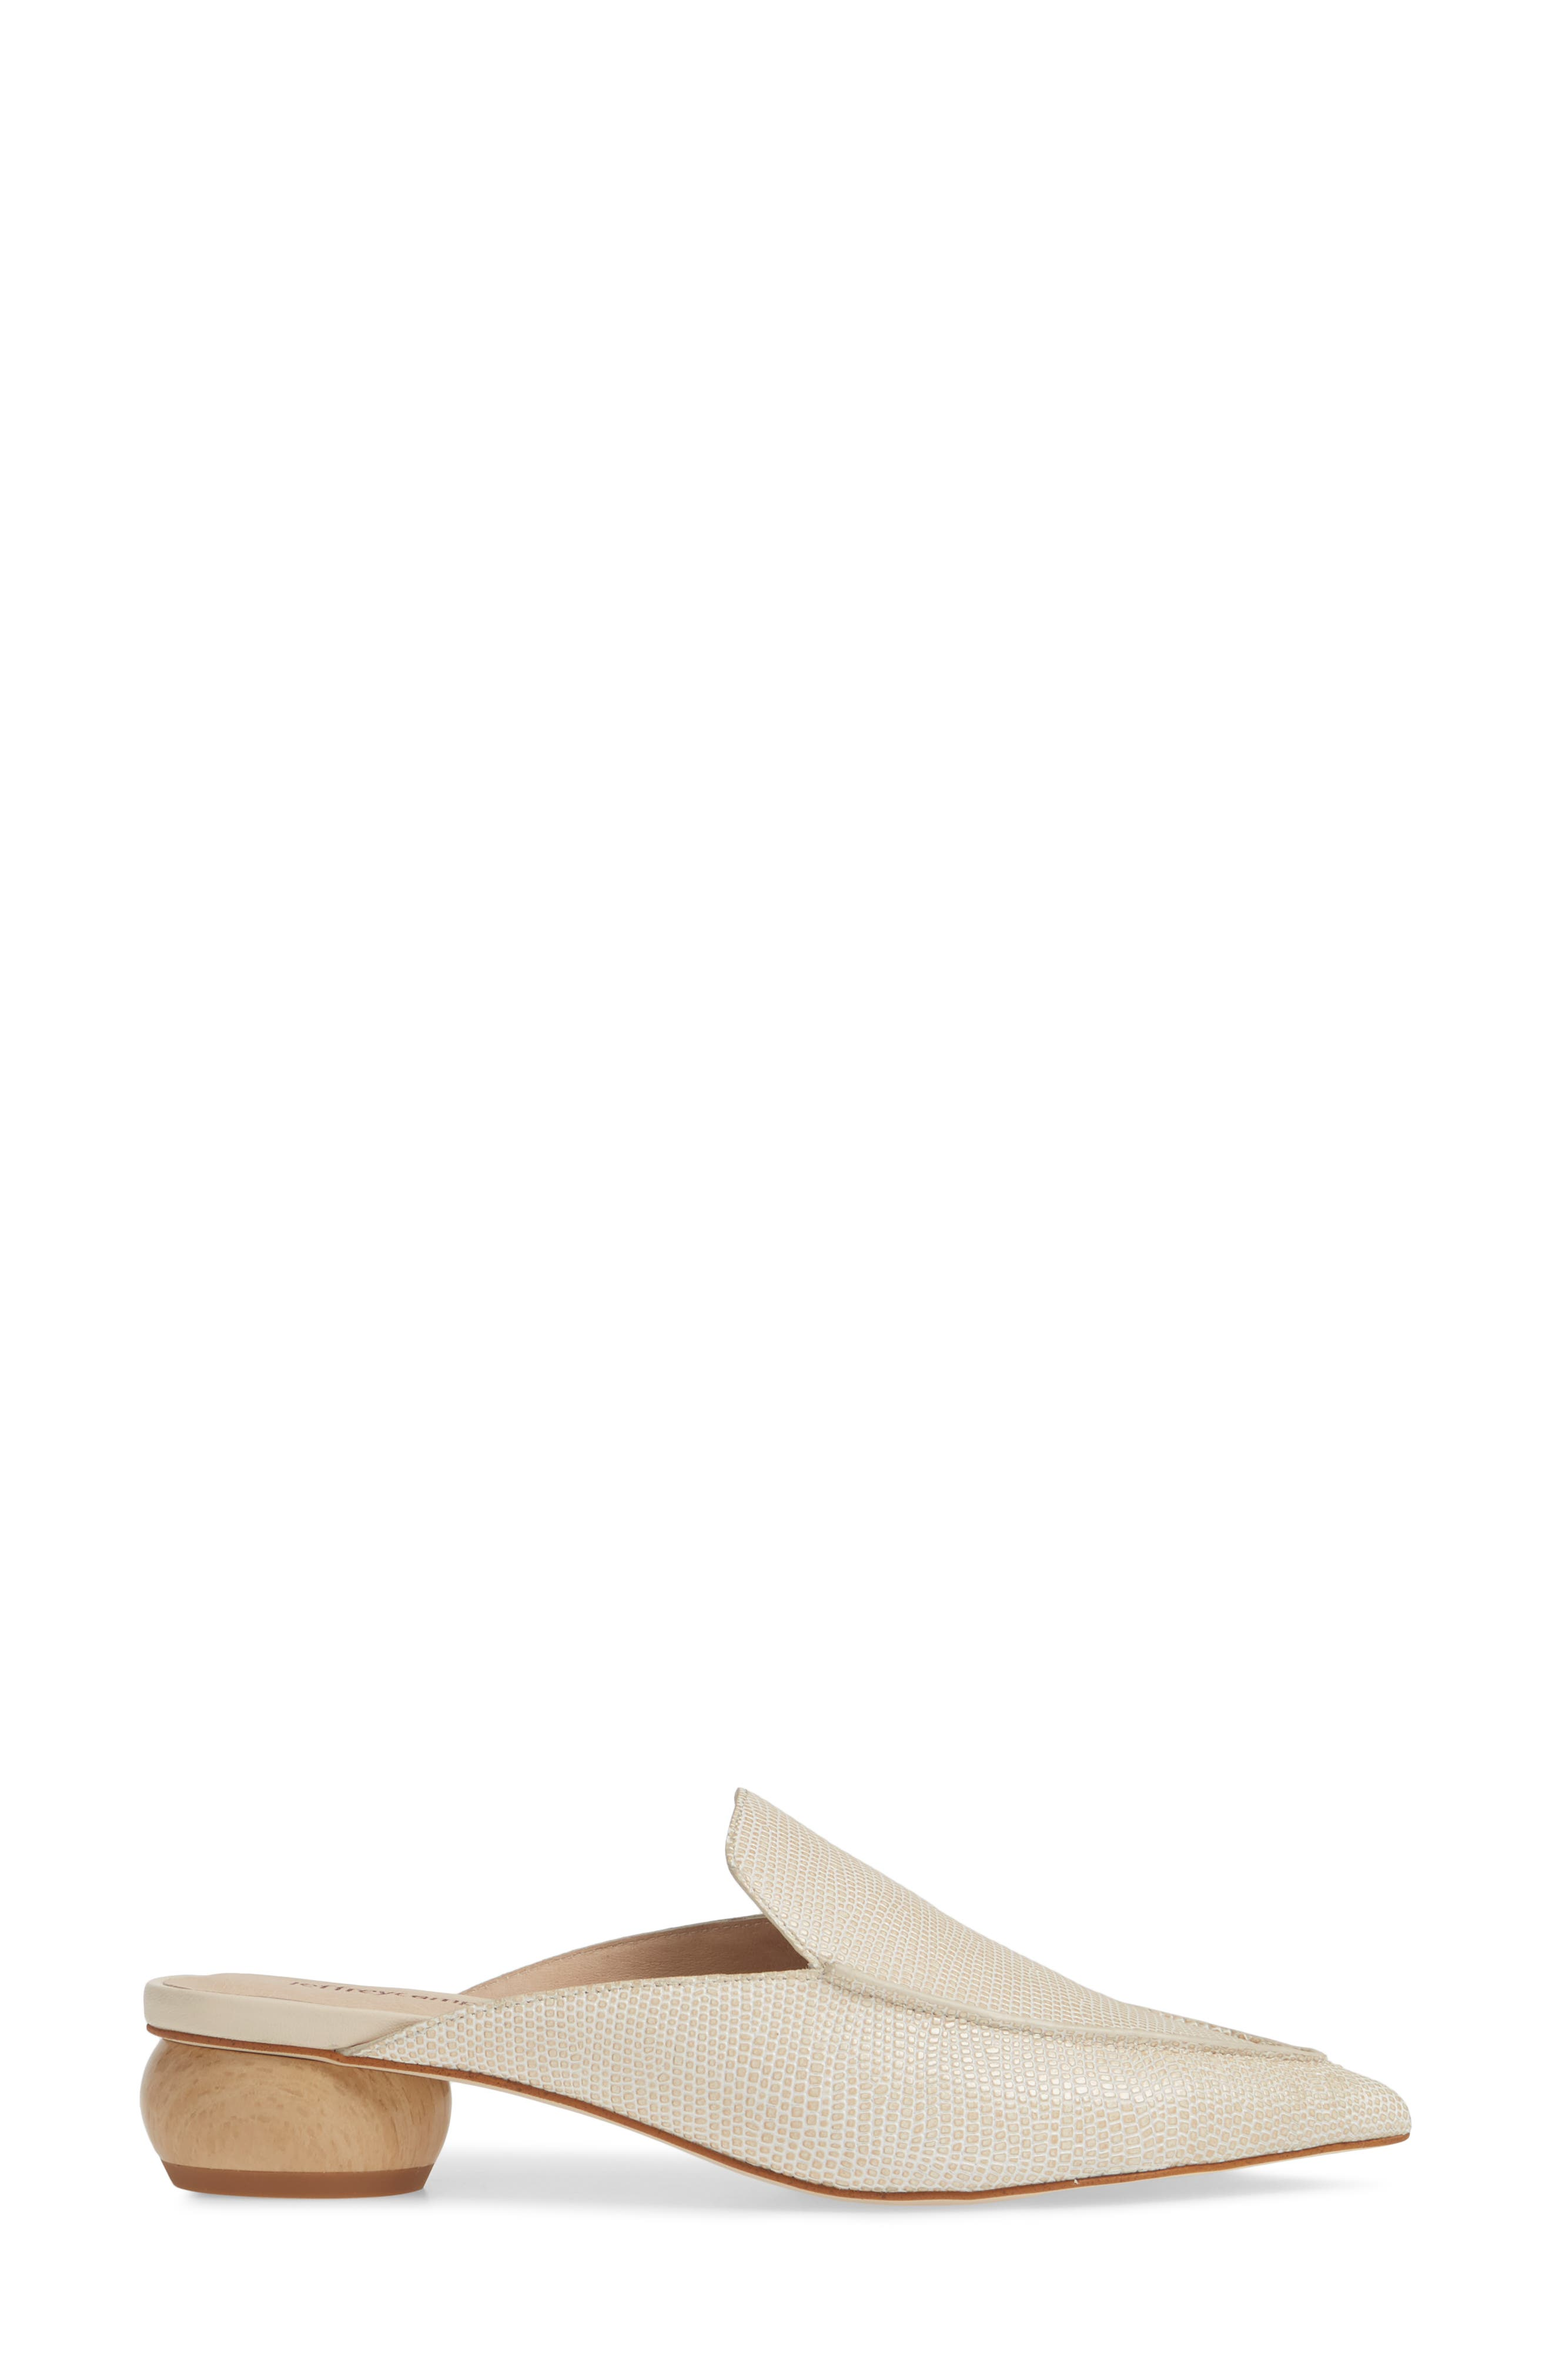 JEFFREY CAMPBELL, Vionit Lizard Embossed Loafer Mule, Alternate thumbnail 3, color, BEIGE LIZARD PRINT